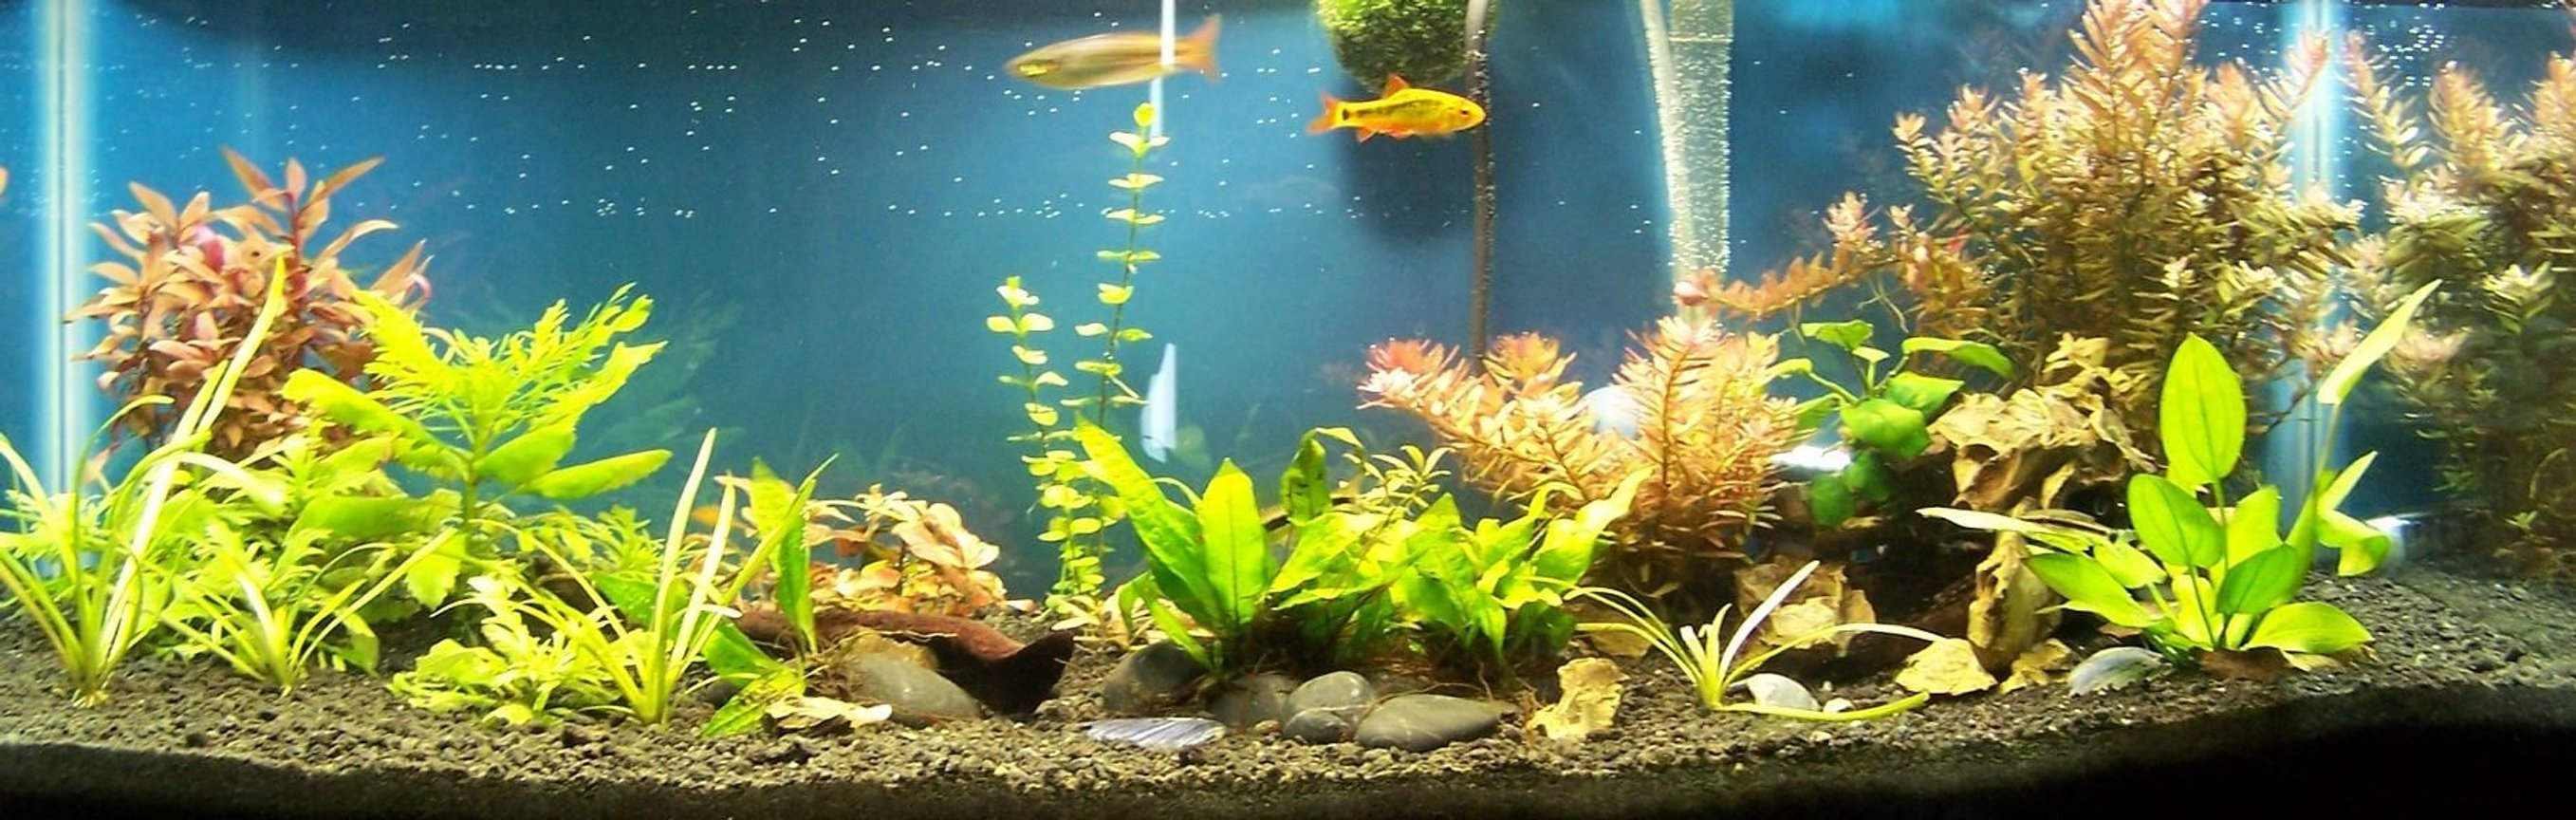 20 gallons planted tank (mostly live plants and fish) - 20 Gallon Long, 4*23 watt CFL Daylight bulbs